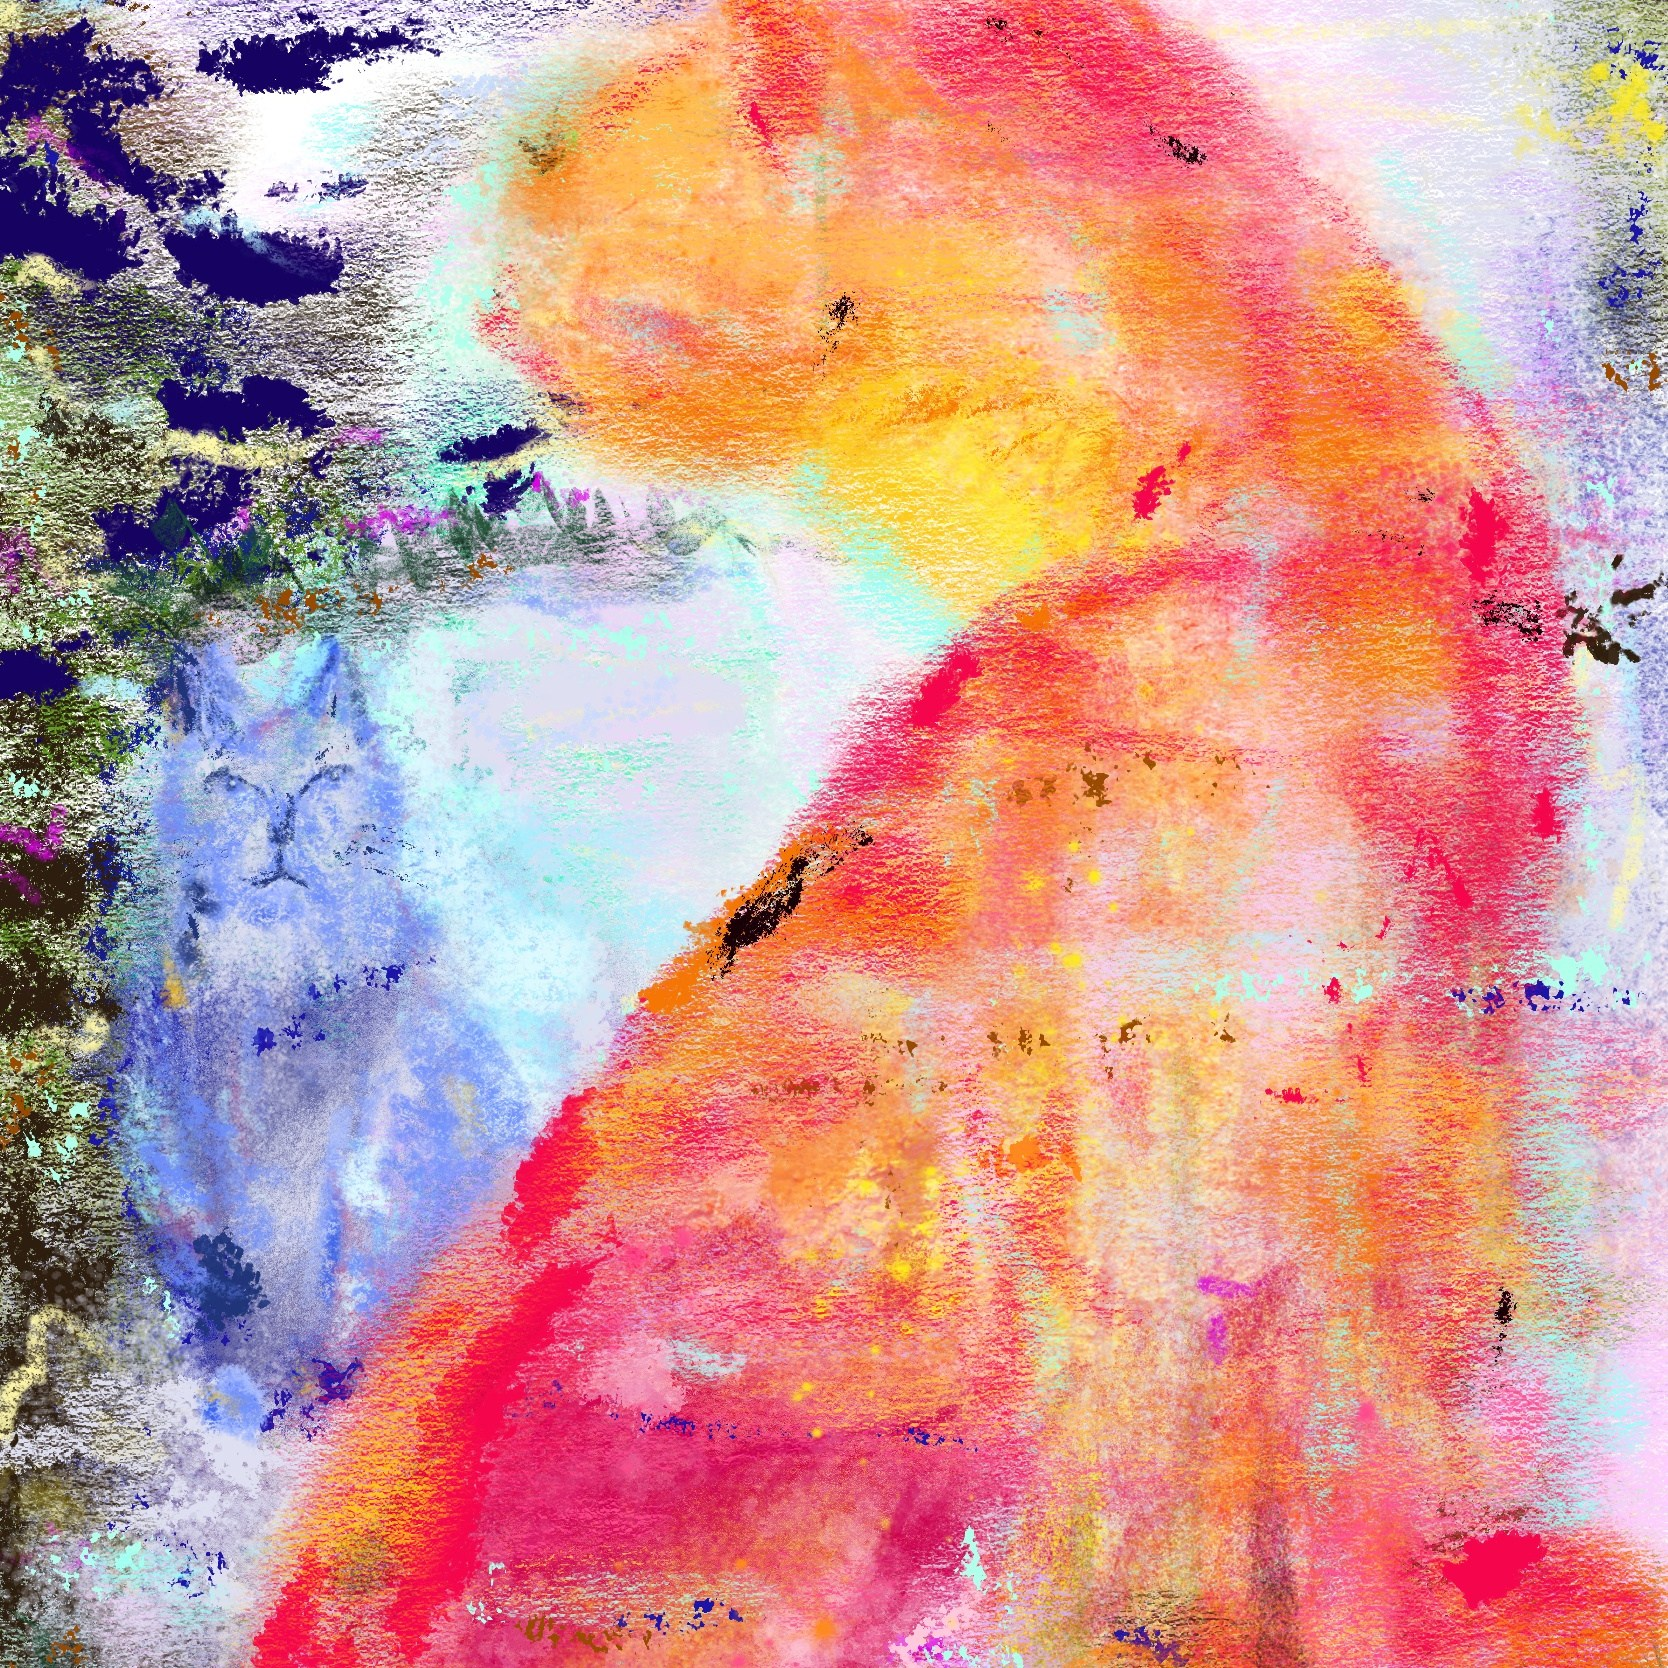 A pastel painting of abstract orange and blue cats